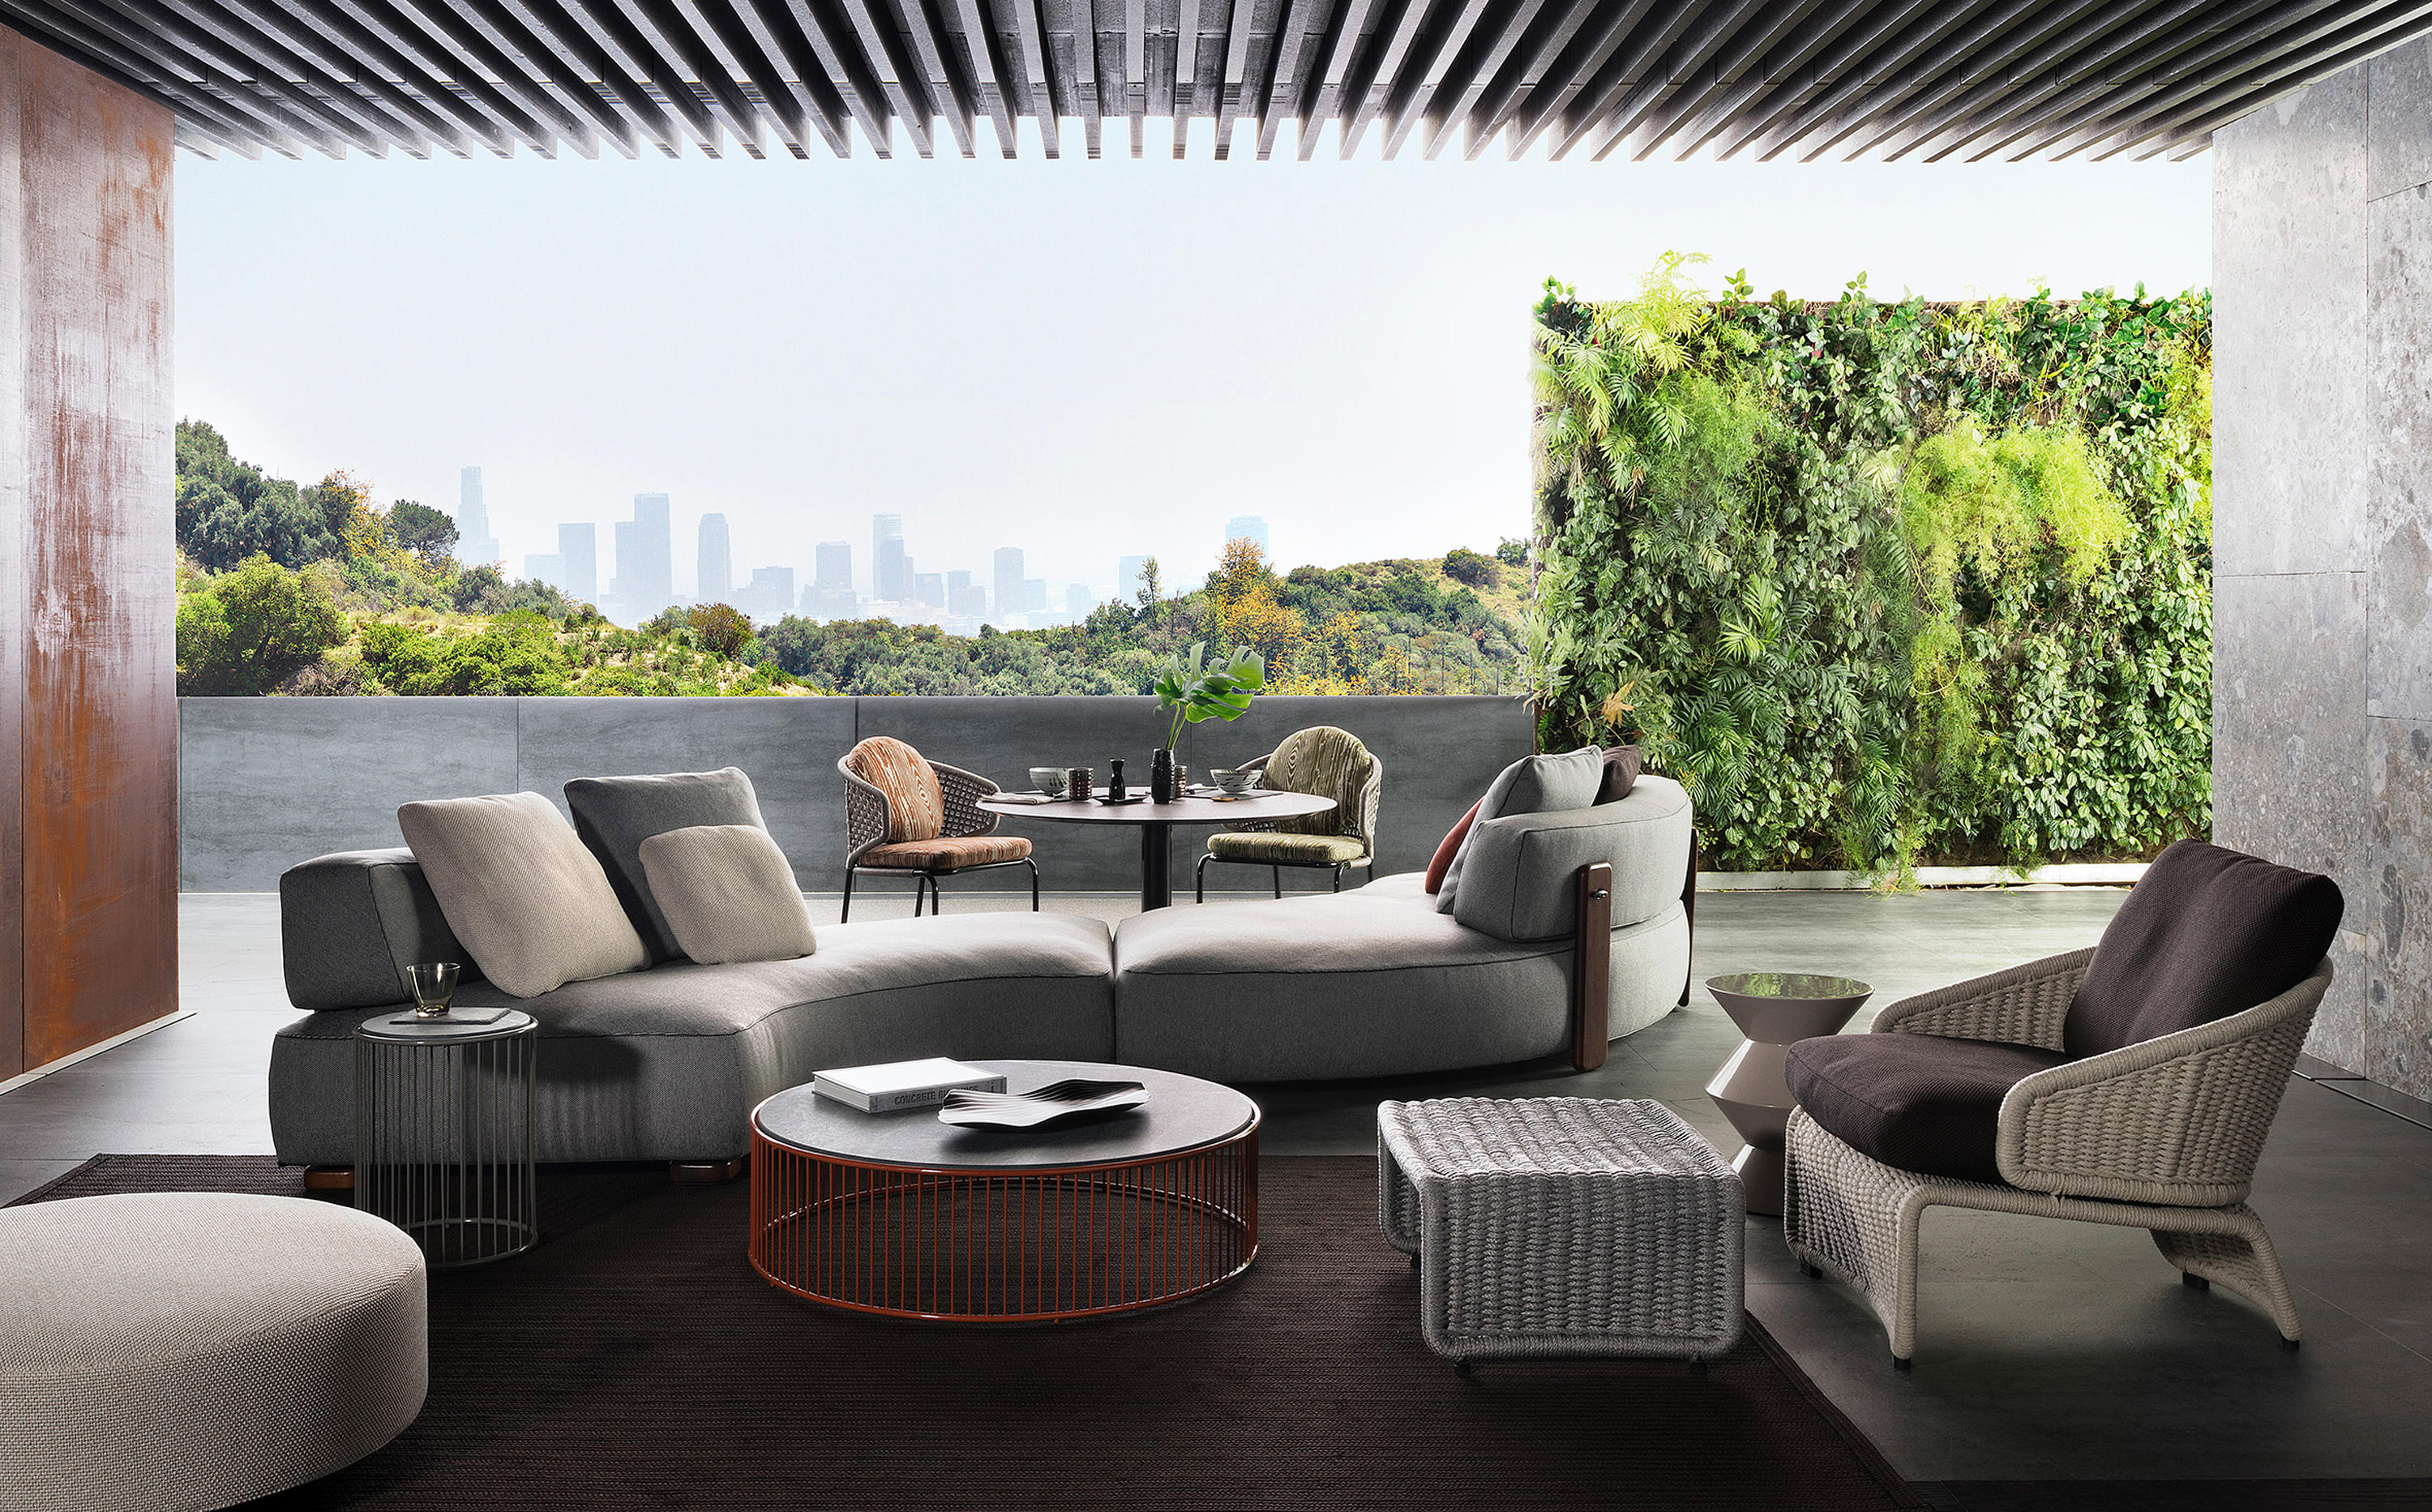 minotti outdoor furniture. Florida Outdoor Sofa By Minotti Furniture